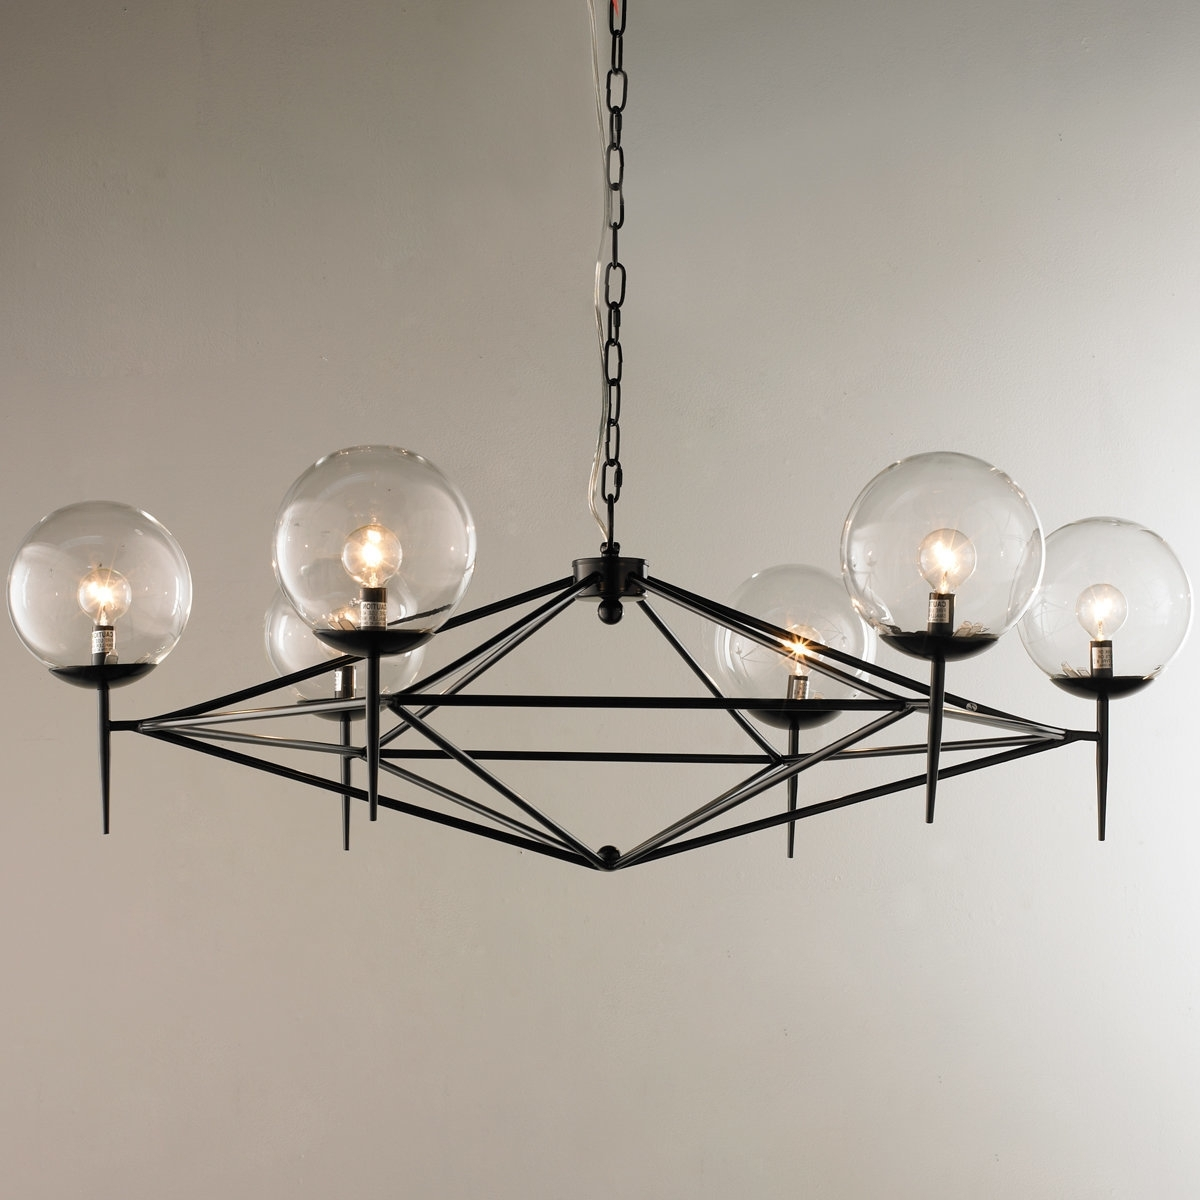 Preferred Contemporary Black Chandelier Inside Home Design : Delightful Modern Black Chandelier 41Hxrfju32L Sl (View 18 of 20)